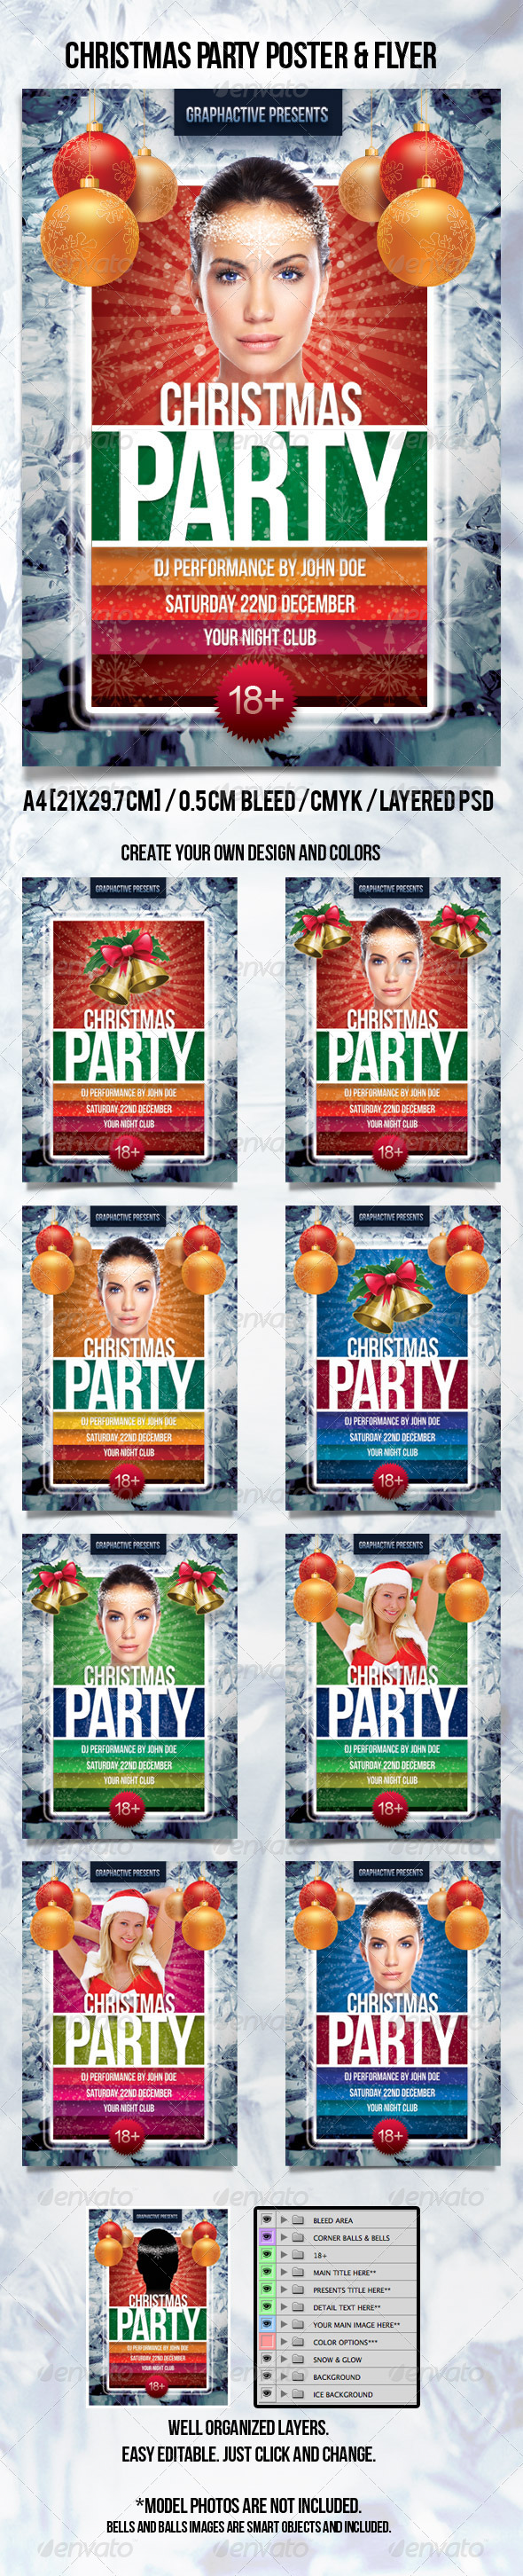 Christmas Party Poster - Clubs & Parties Events